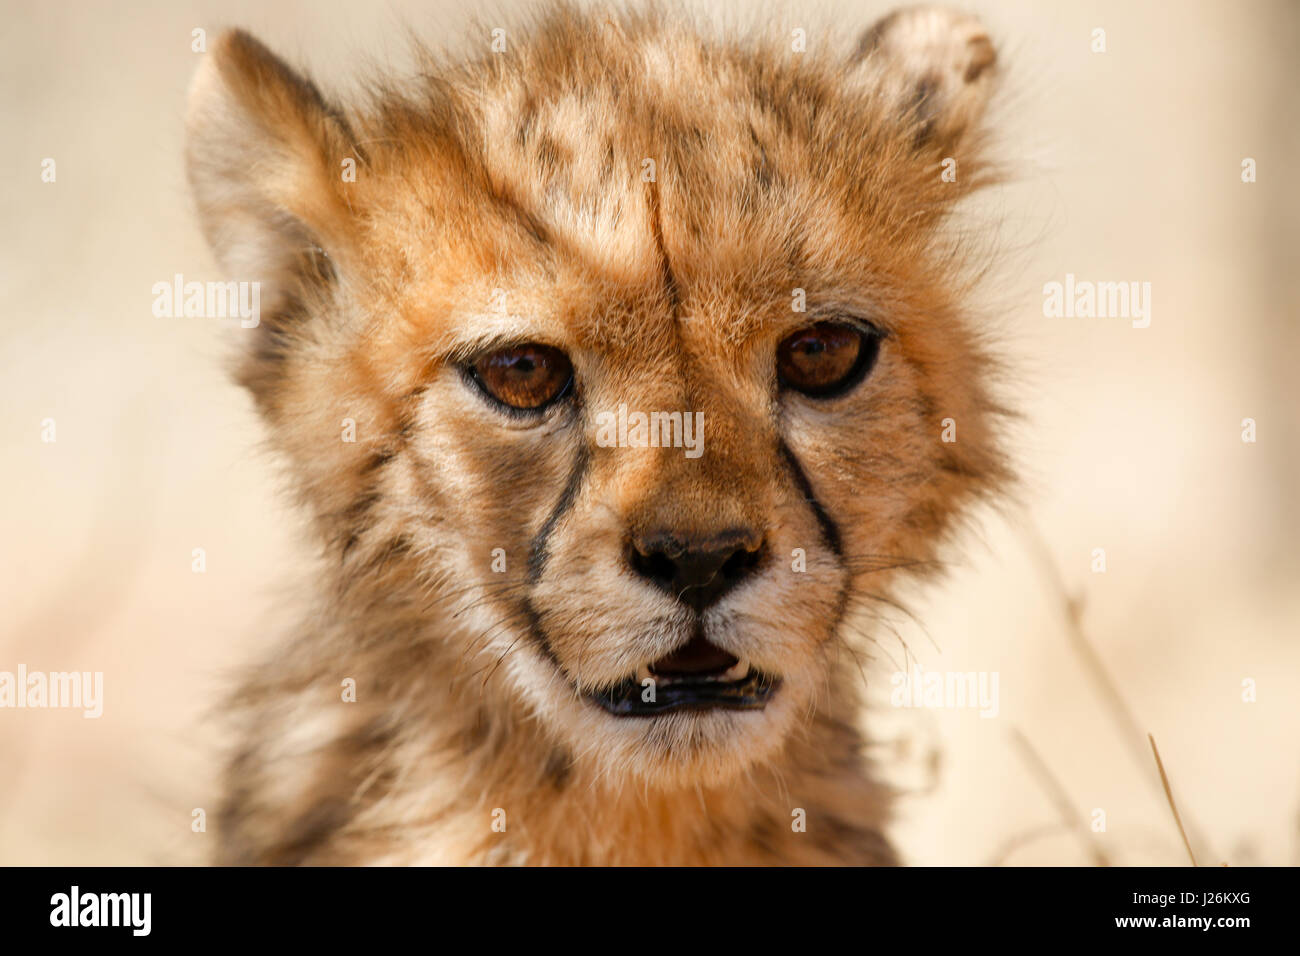 Close up of cube baby cheetah cub in Africa - Stock Image